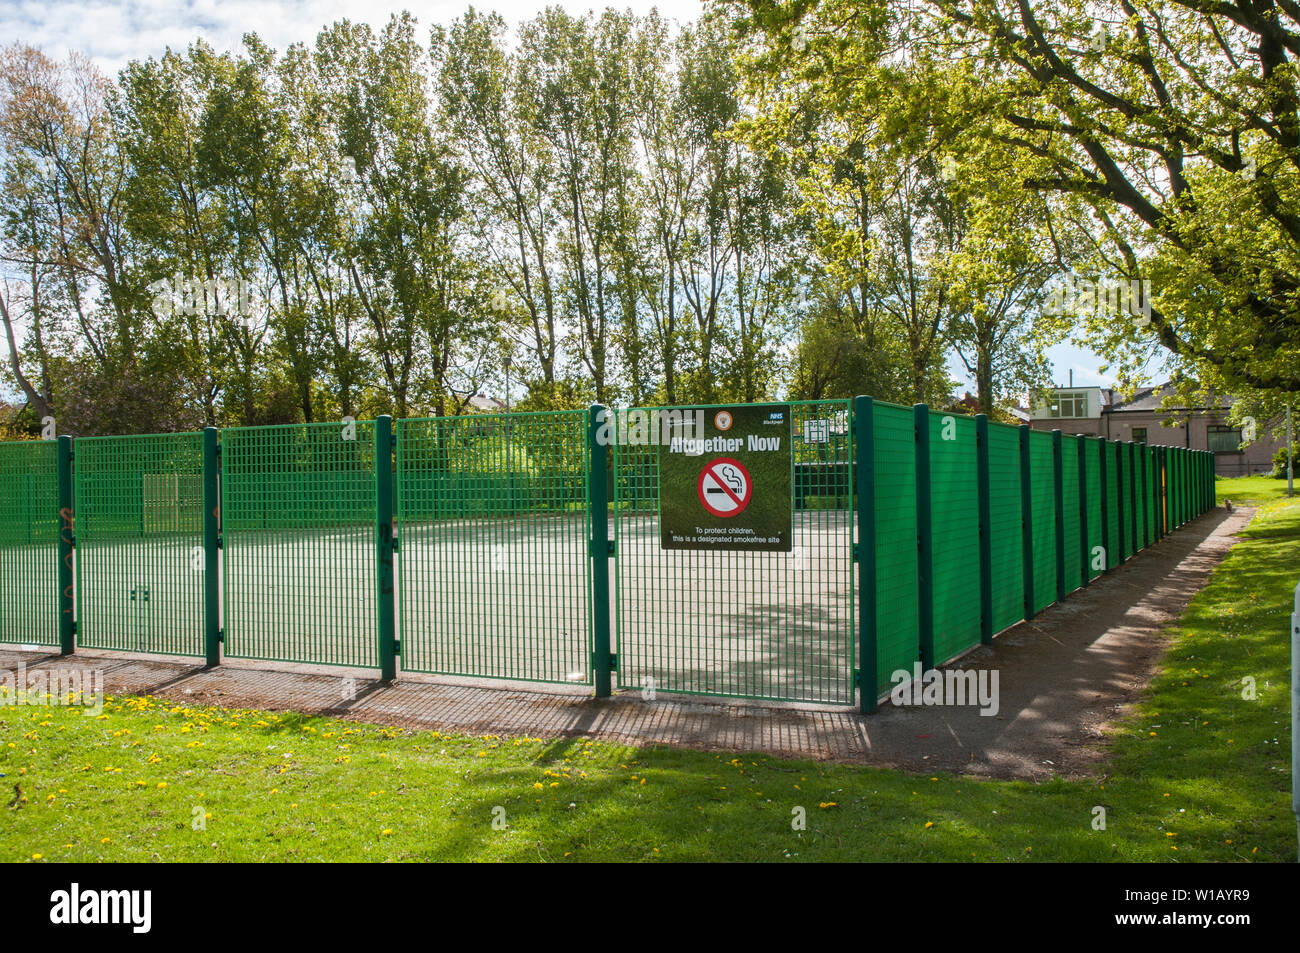 No smoking sign on fencing around sports area to protect children on local partk in Blackpool Lancashire England UK Stock Photo